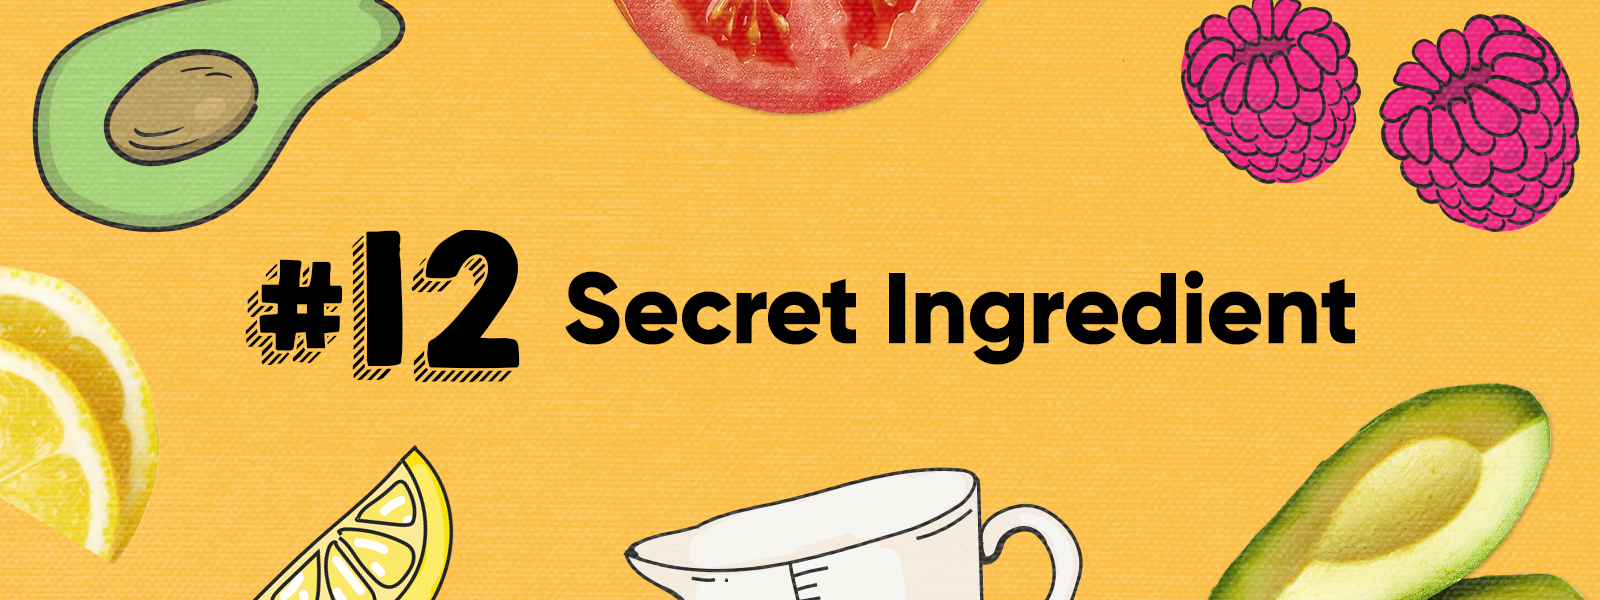 Skill 12: Secret Ingredient